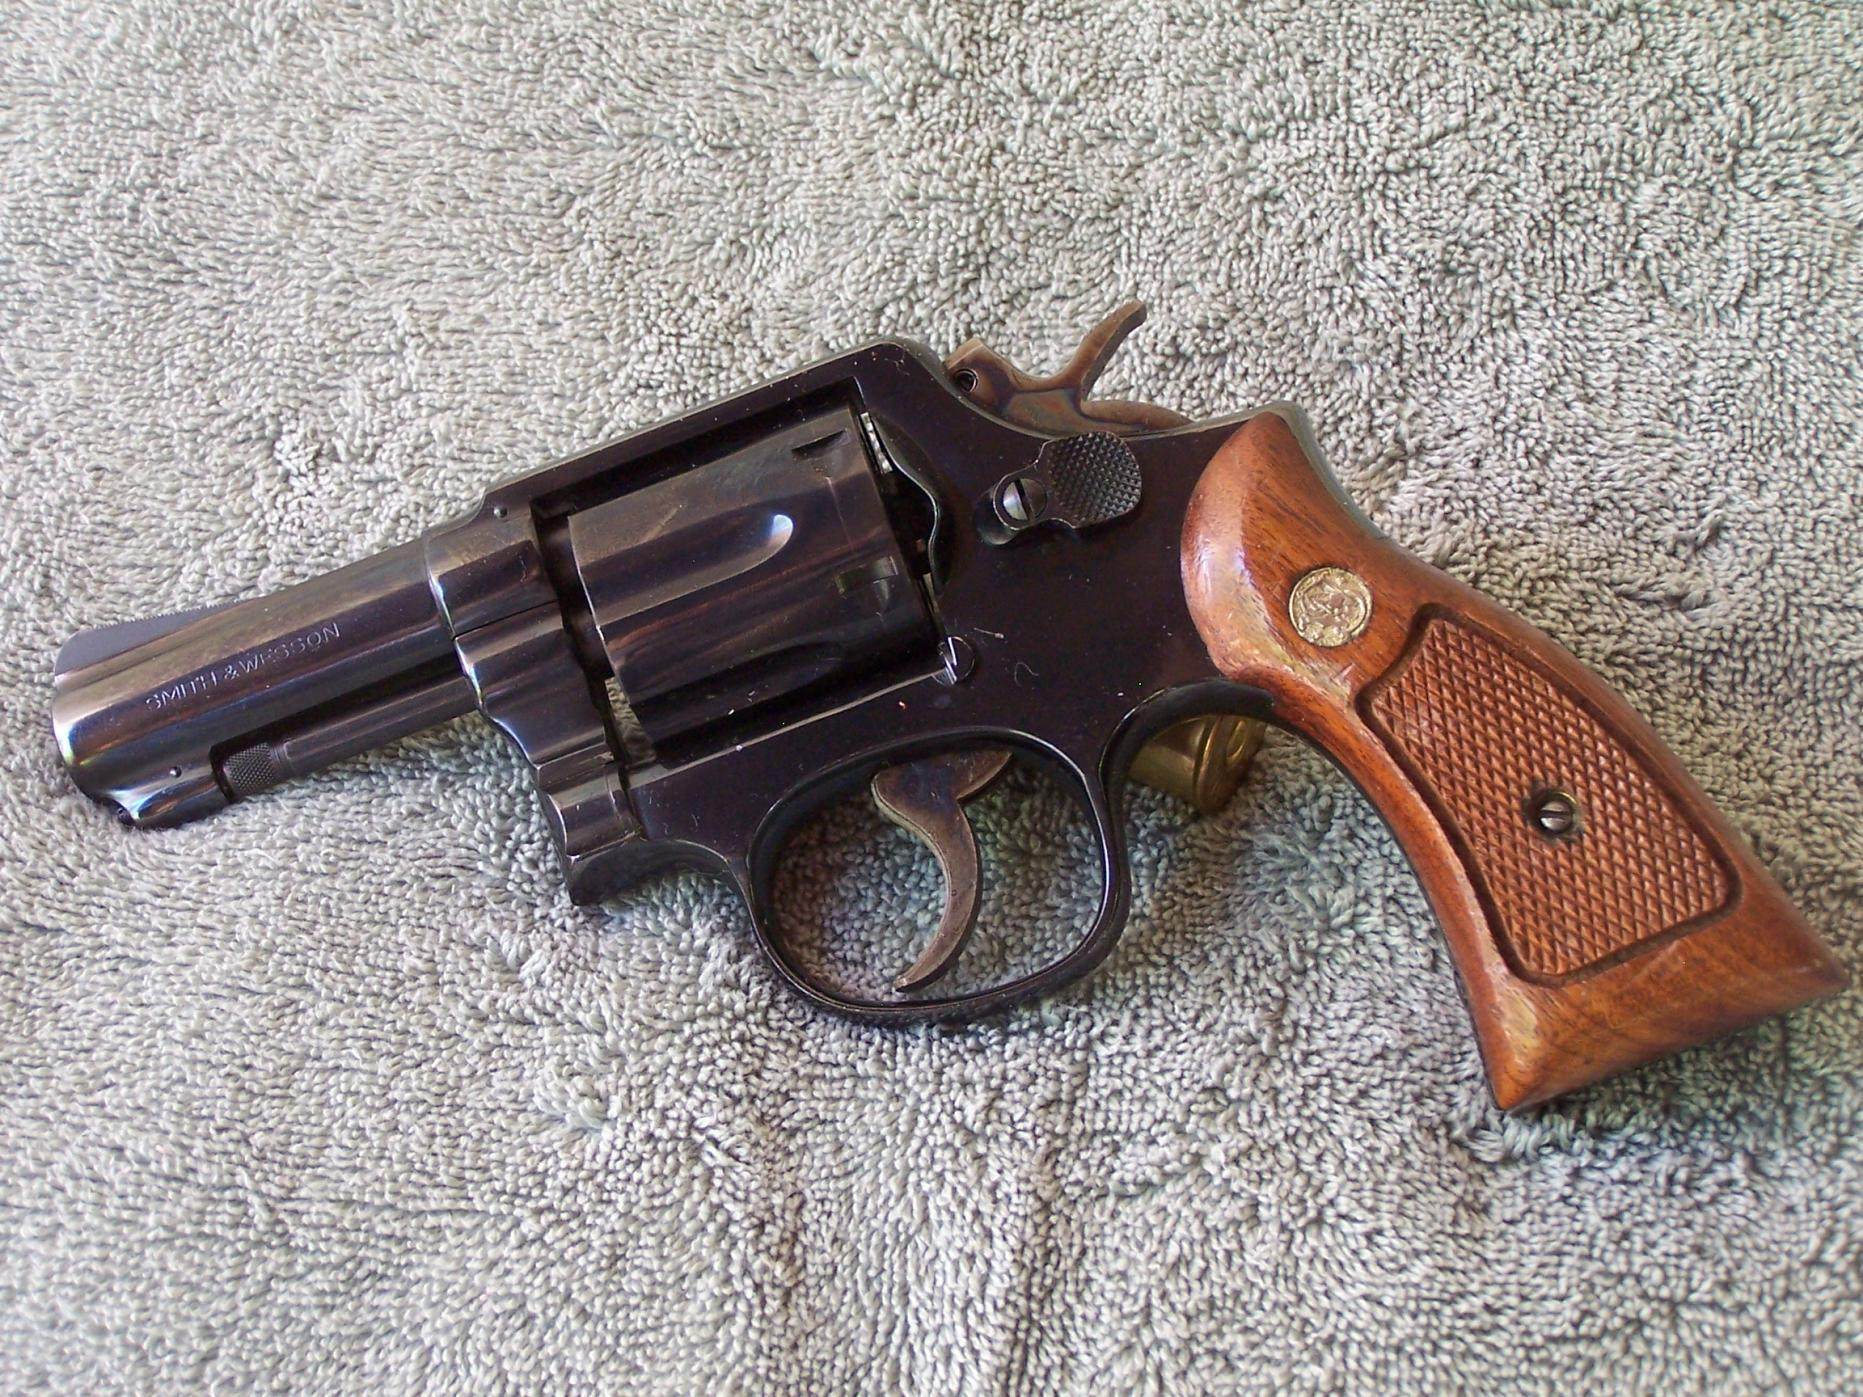 """Official """"I love my beat up carry gun"""" picture thread-019.jpg"""